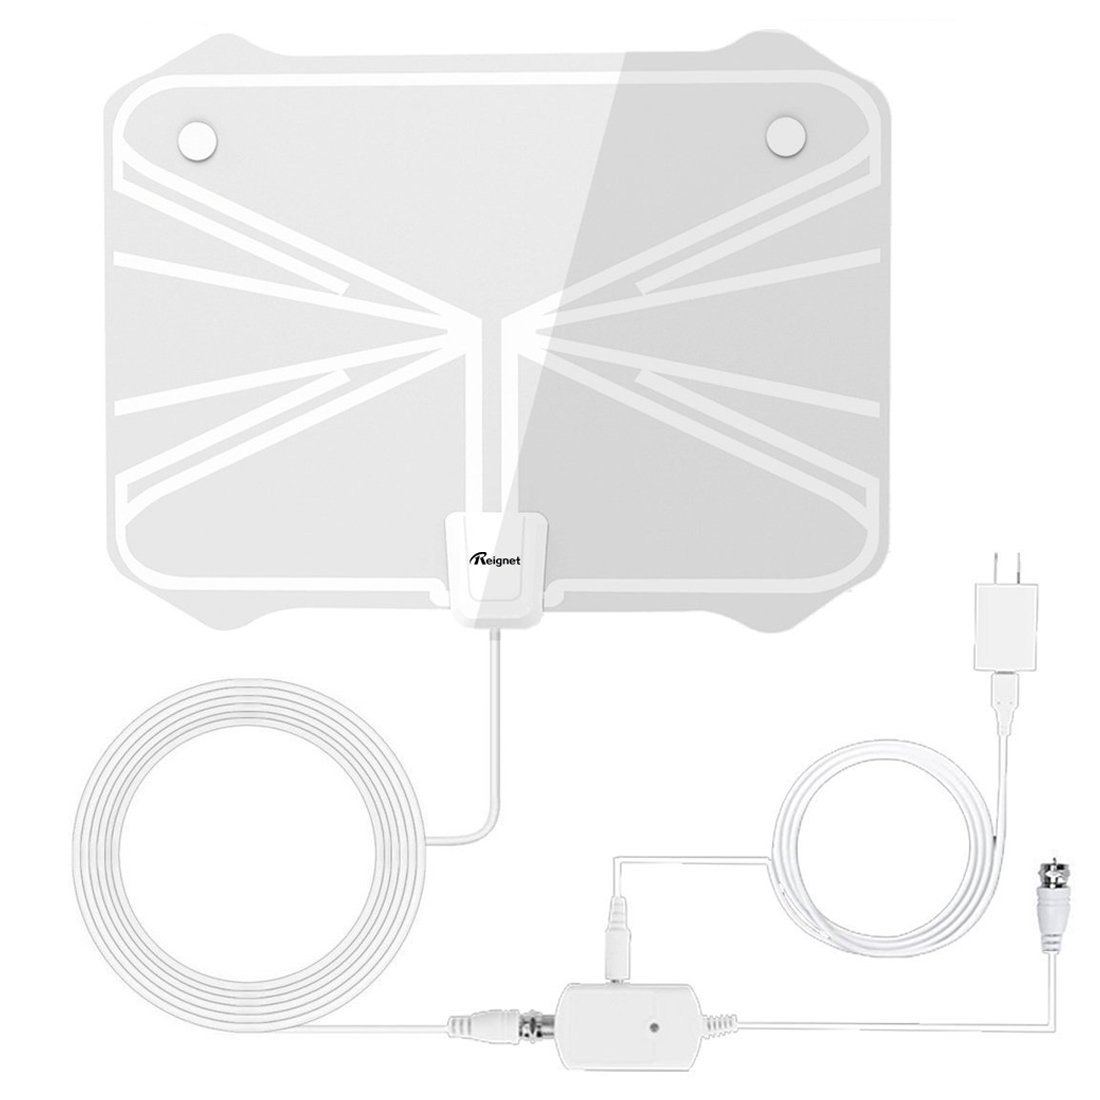 TV Antenna, Reignet 50 to 70 Mile Range Amplified Indoor HDTV Antenna with Detachable Amplifier Signal Booster and 16.5FT Coax Cable - White